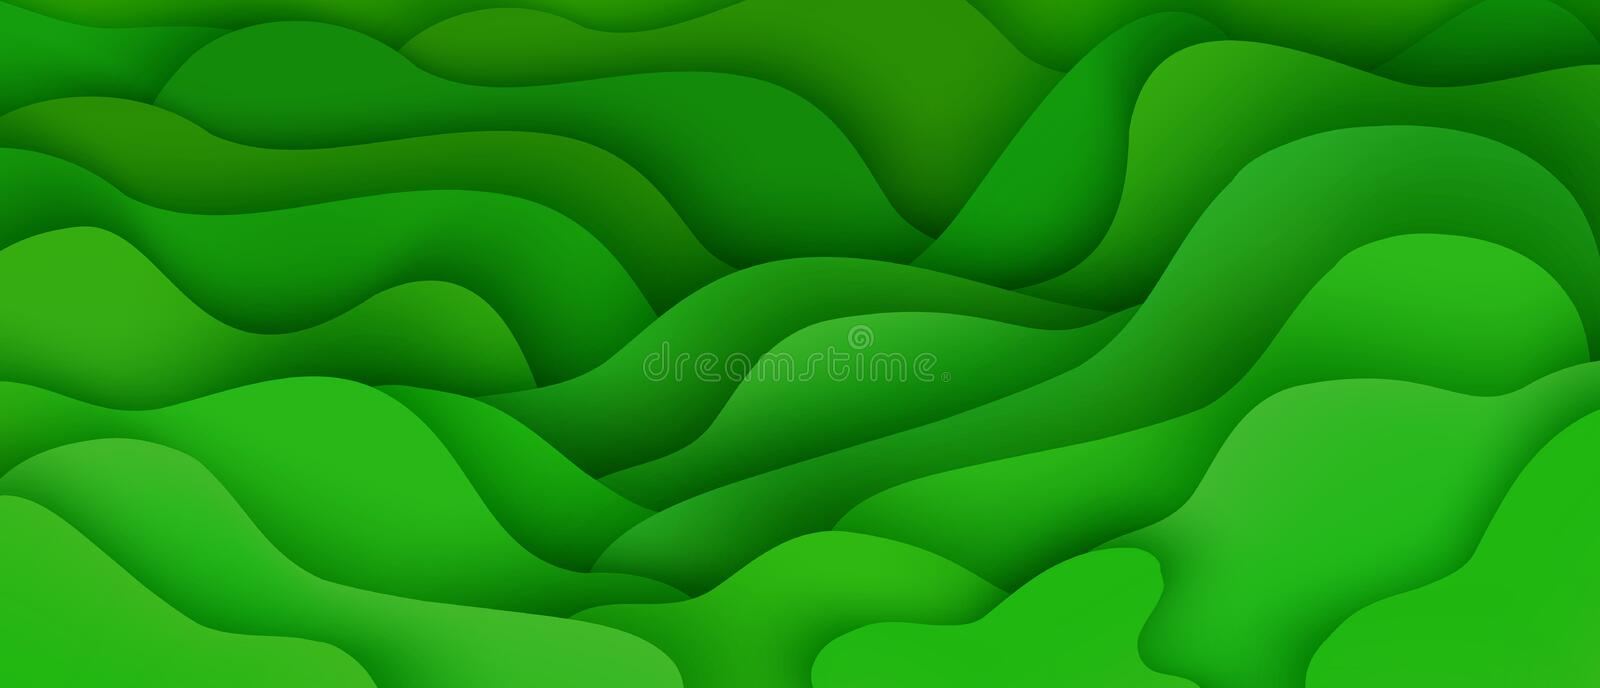 Abstract background with expressive green wave motion flow and liquid shapes composition. Gradient fluid abstract background template, vector illustration stock illustration